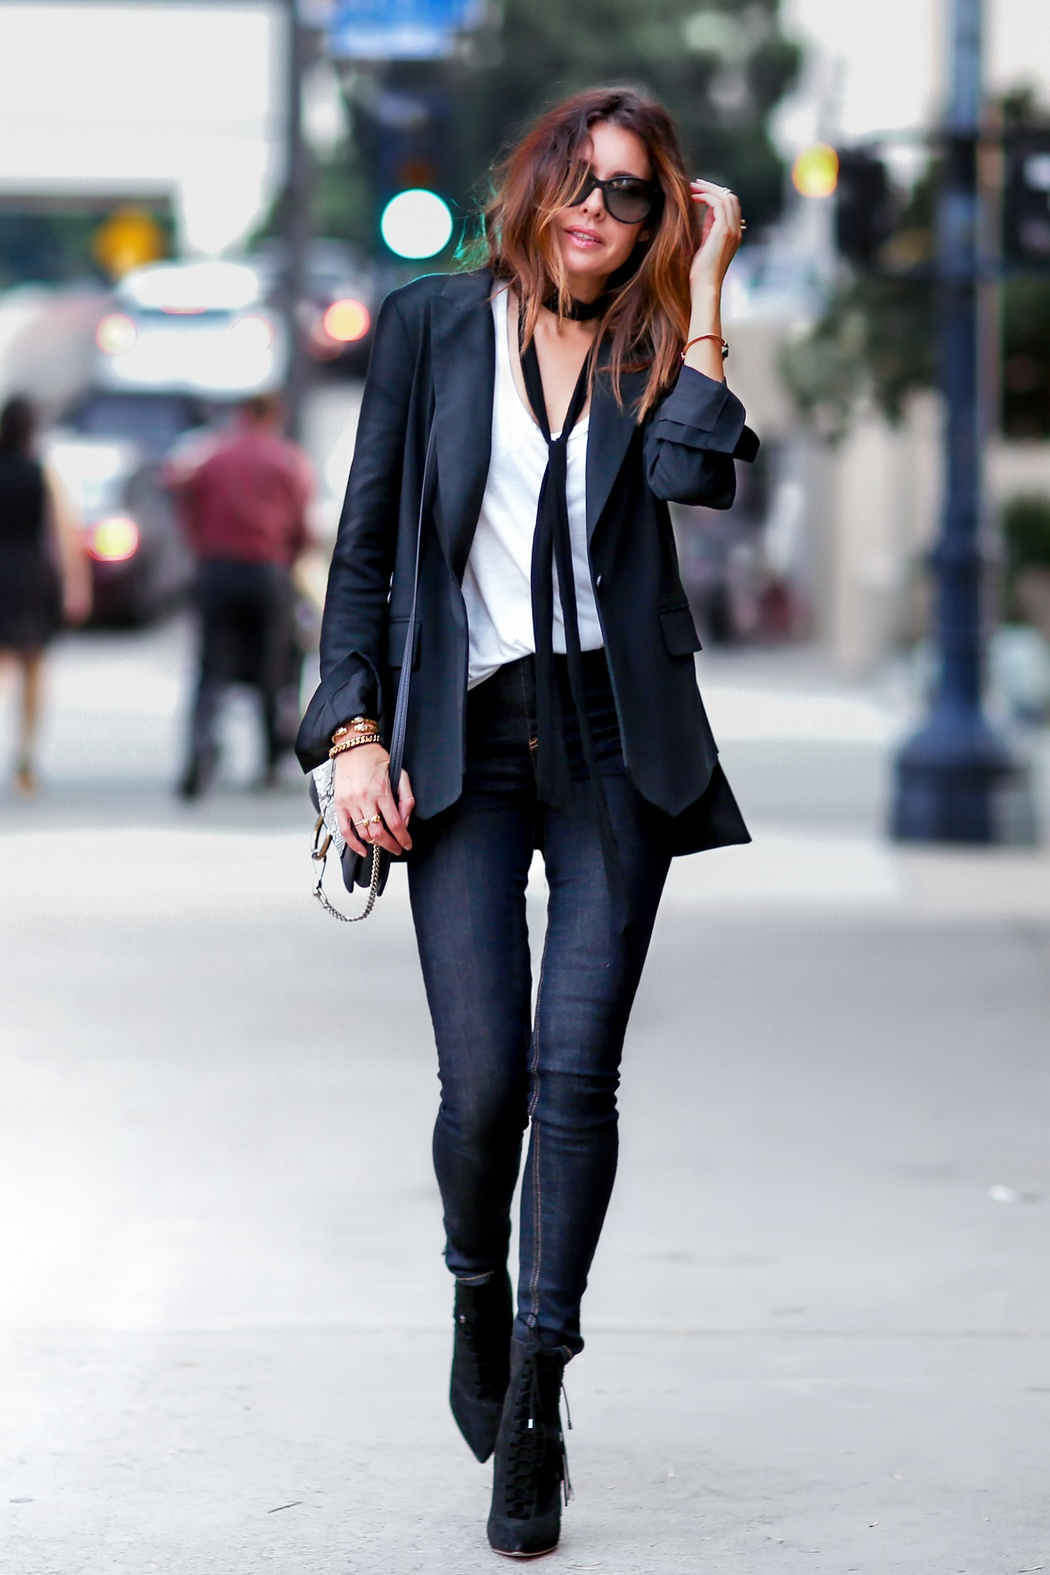 Skinny Scarf Trend Are You Buying Into This Fall Trend